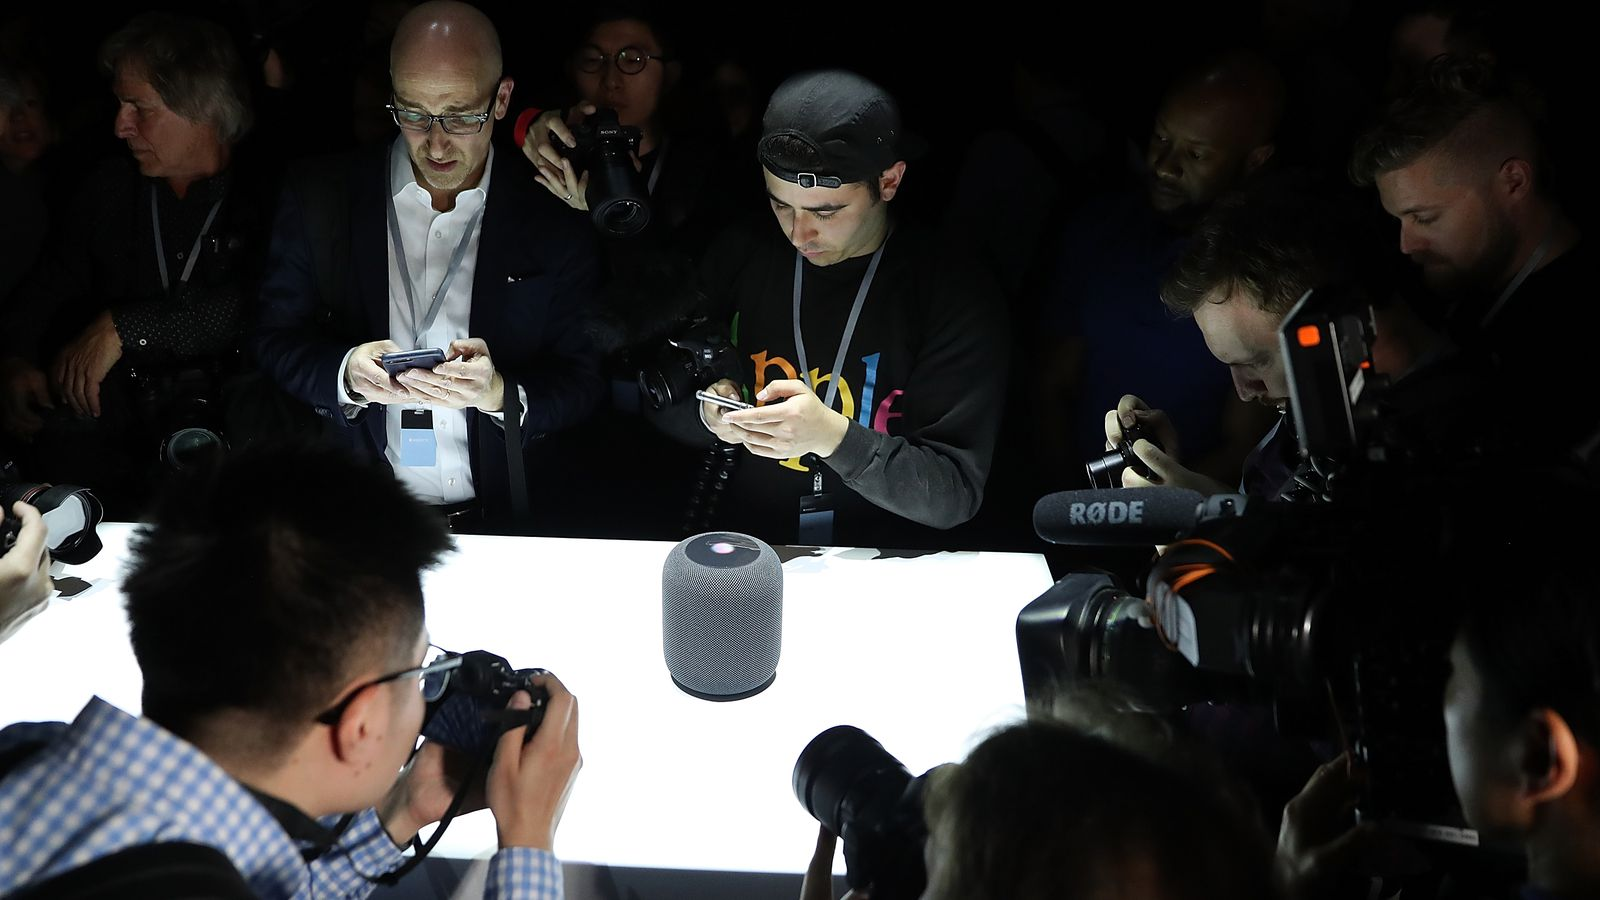 Apple is Pitching the HomePod as a Super High-quality Speaker. That's Going to Be a Very Tough Sell.